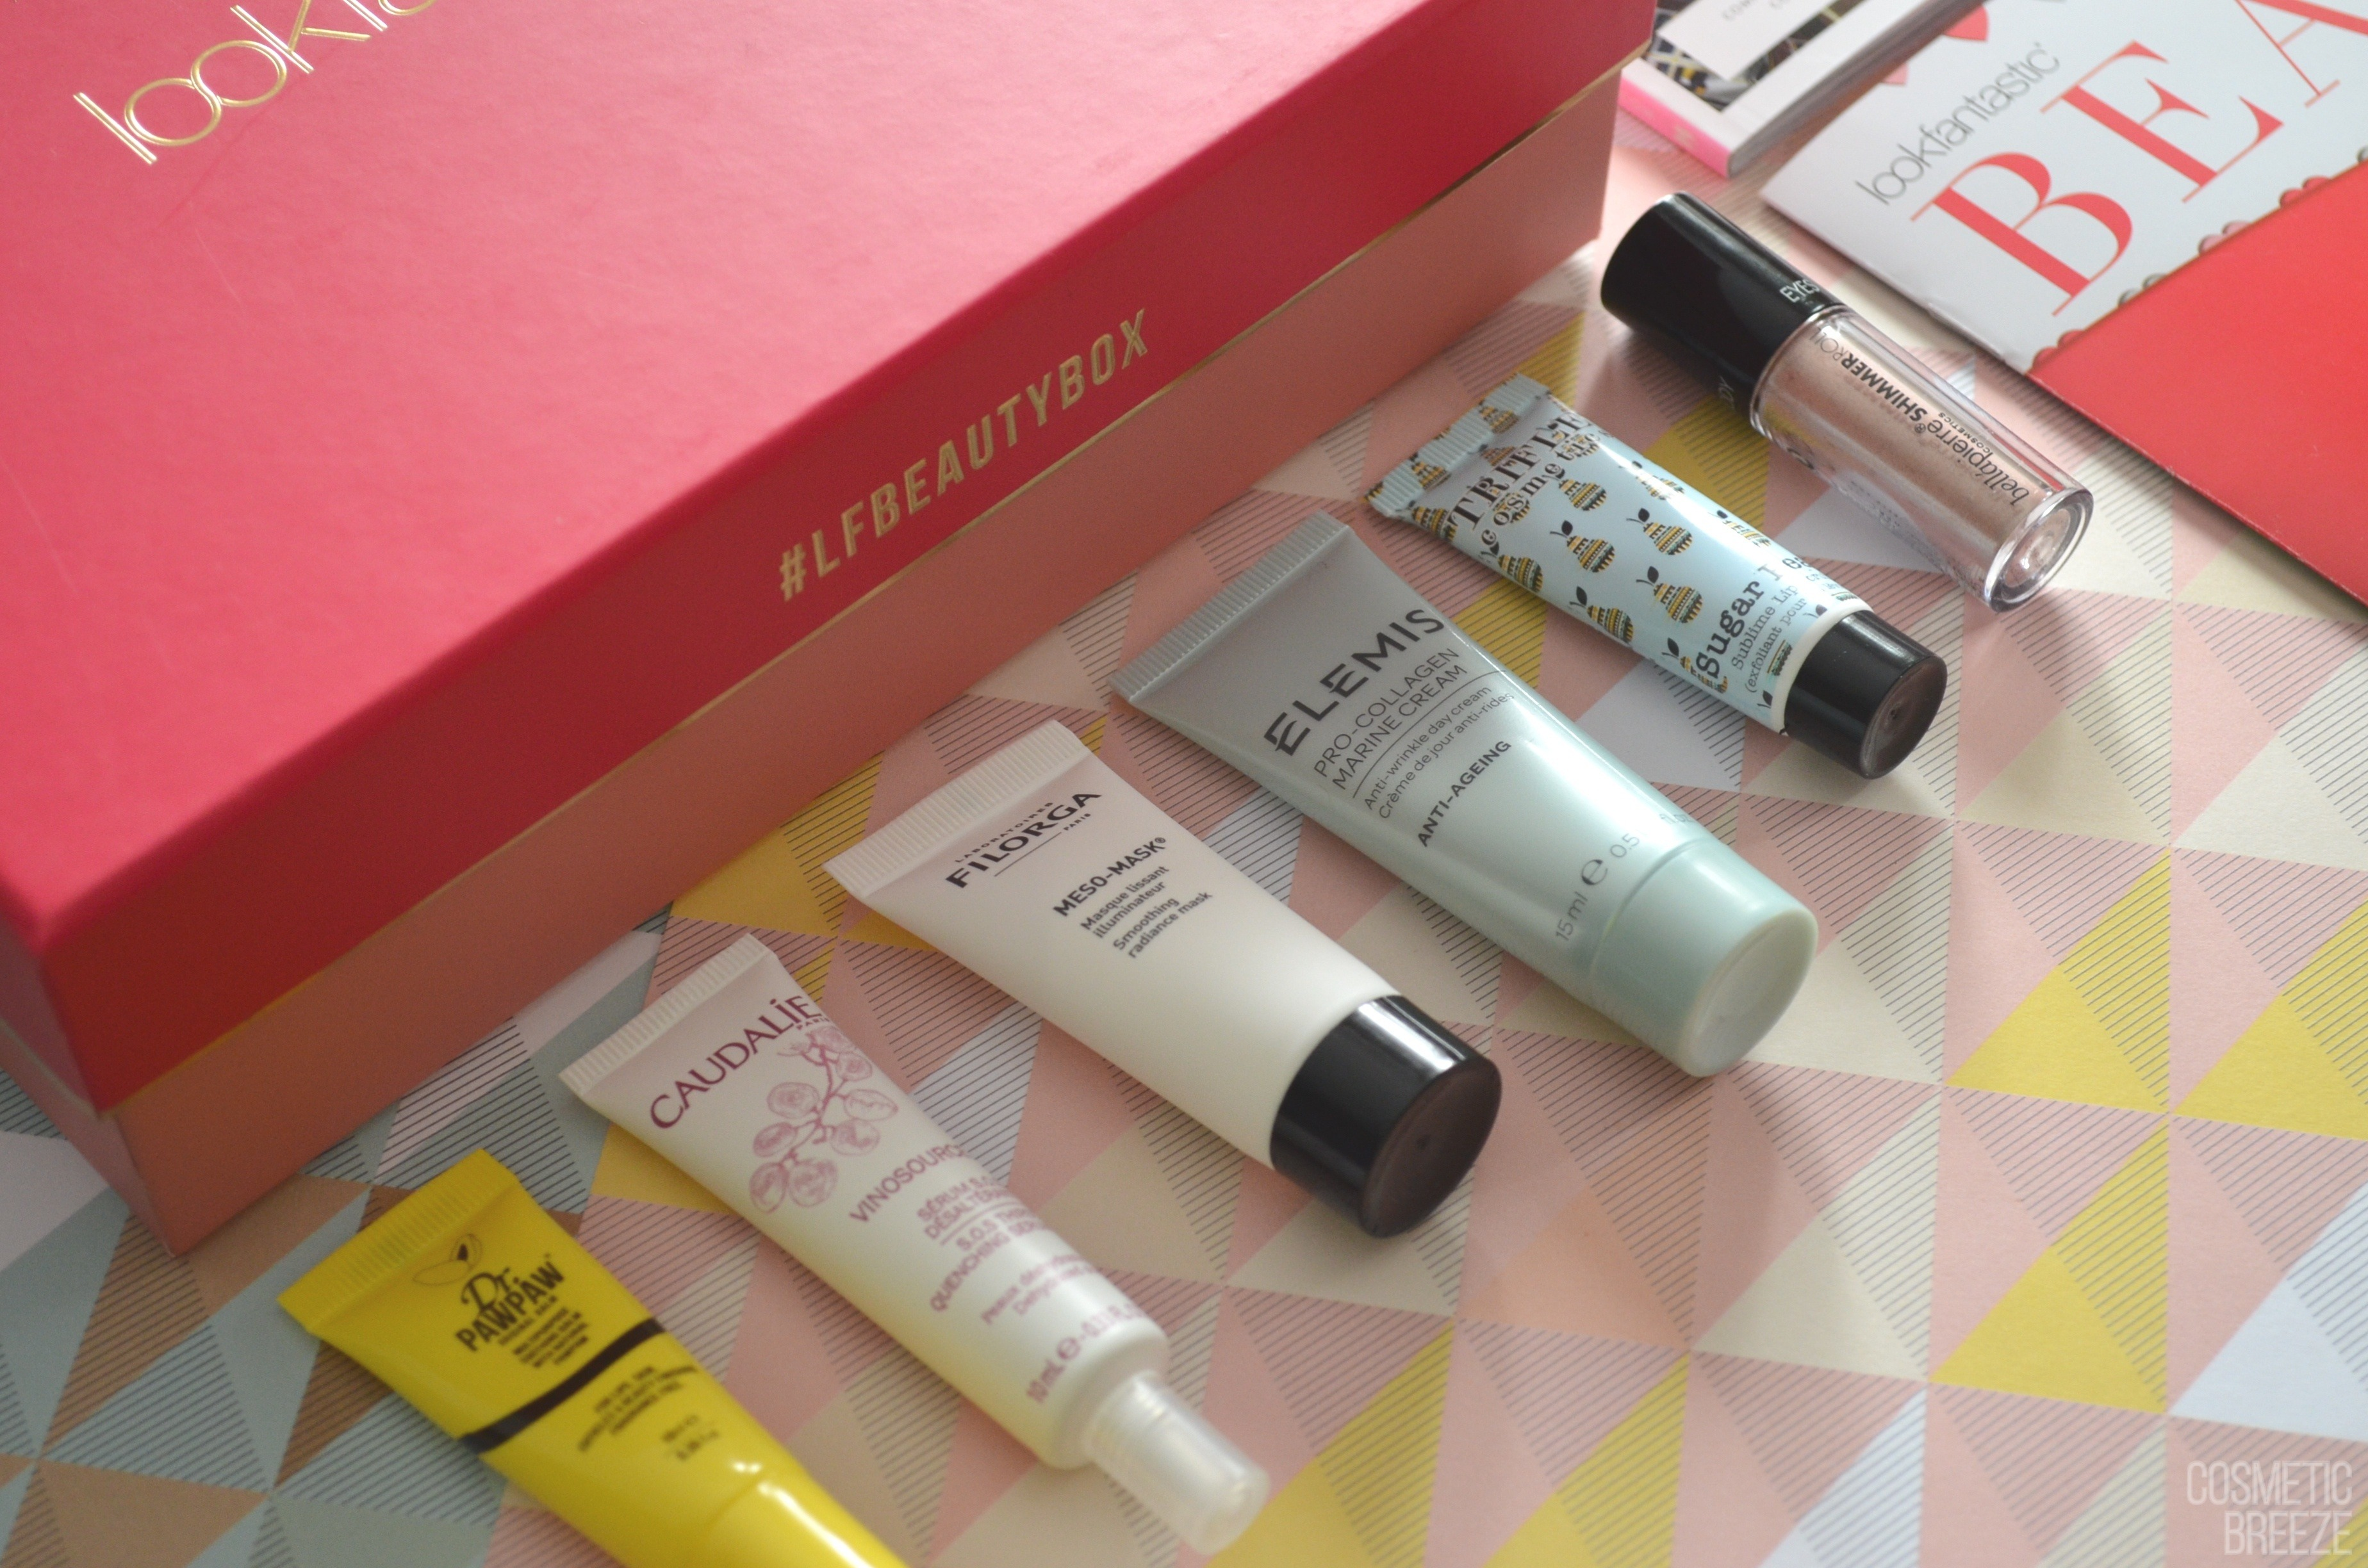 Lookfantastic Beauty Box de Febrero 2018 - Beauty rendezvous - Contenido 4 (1)